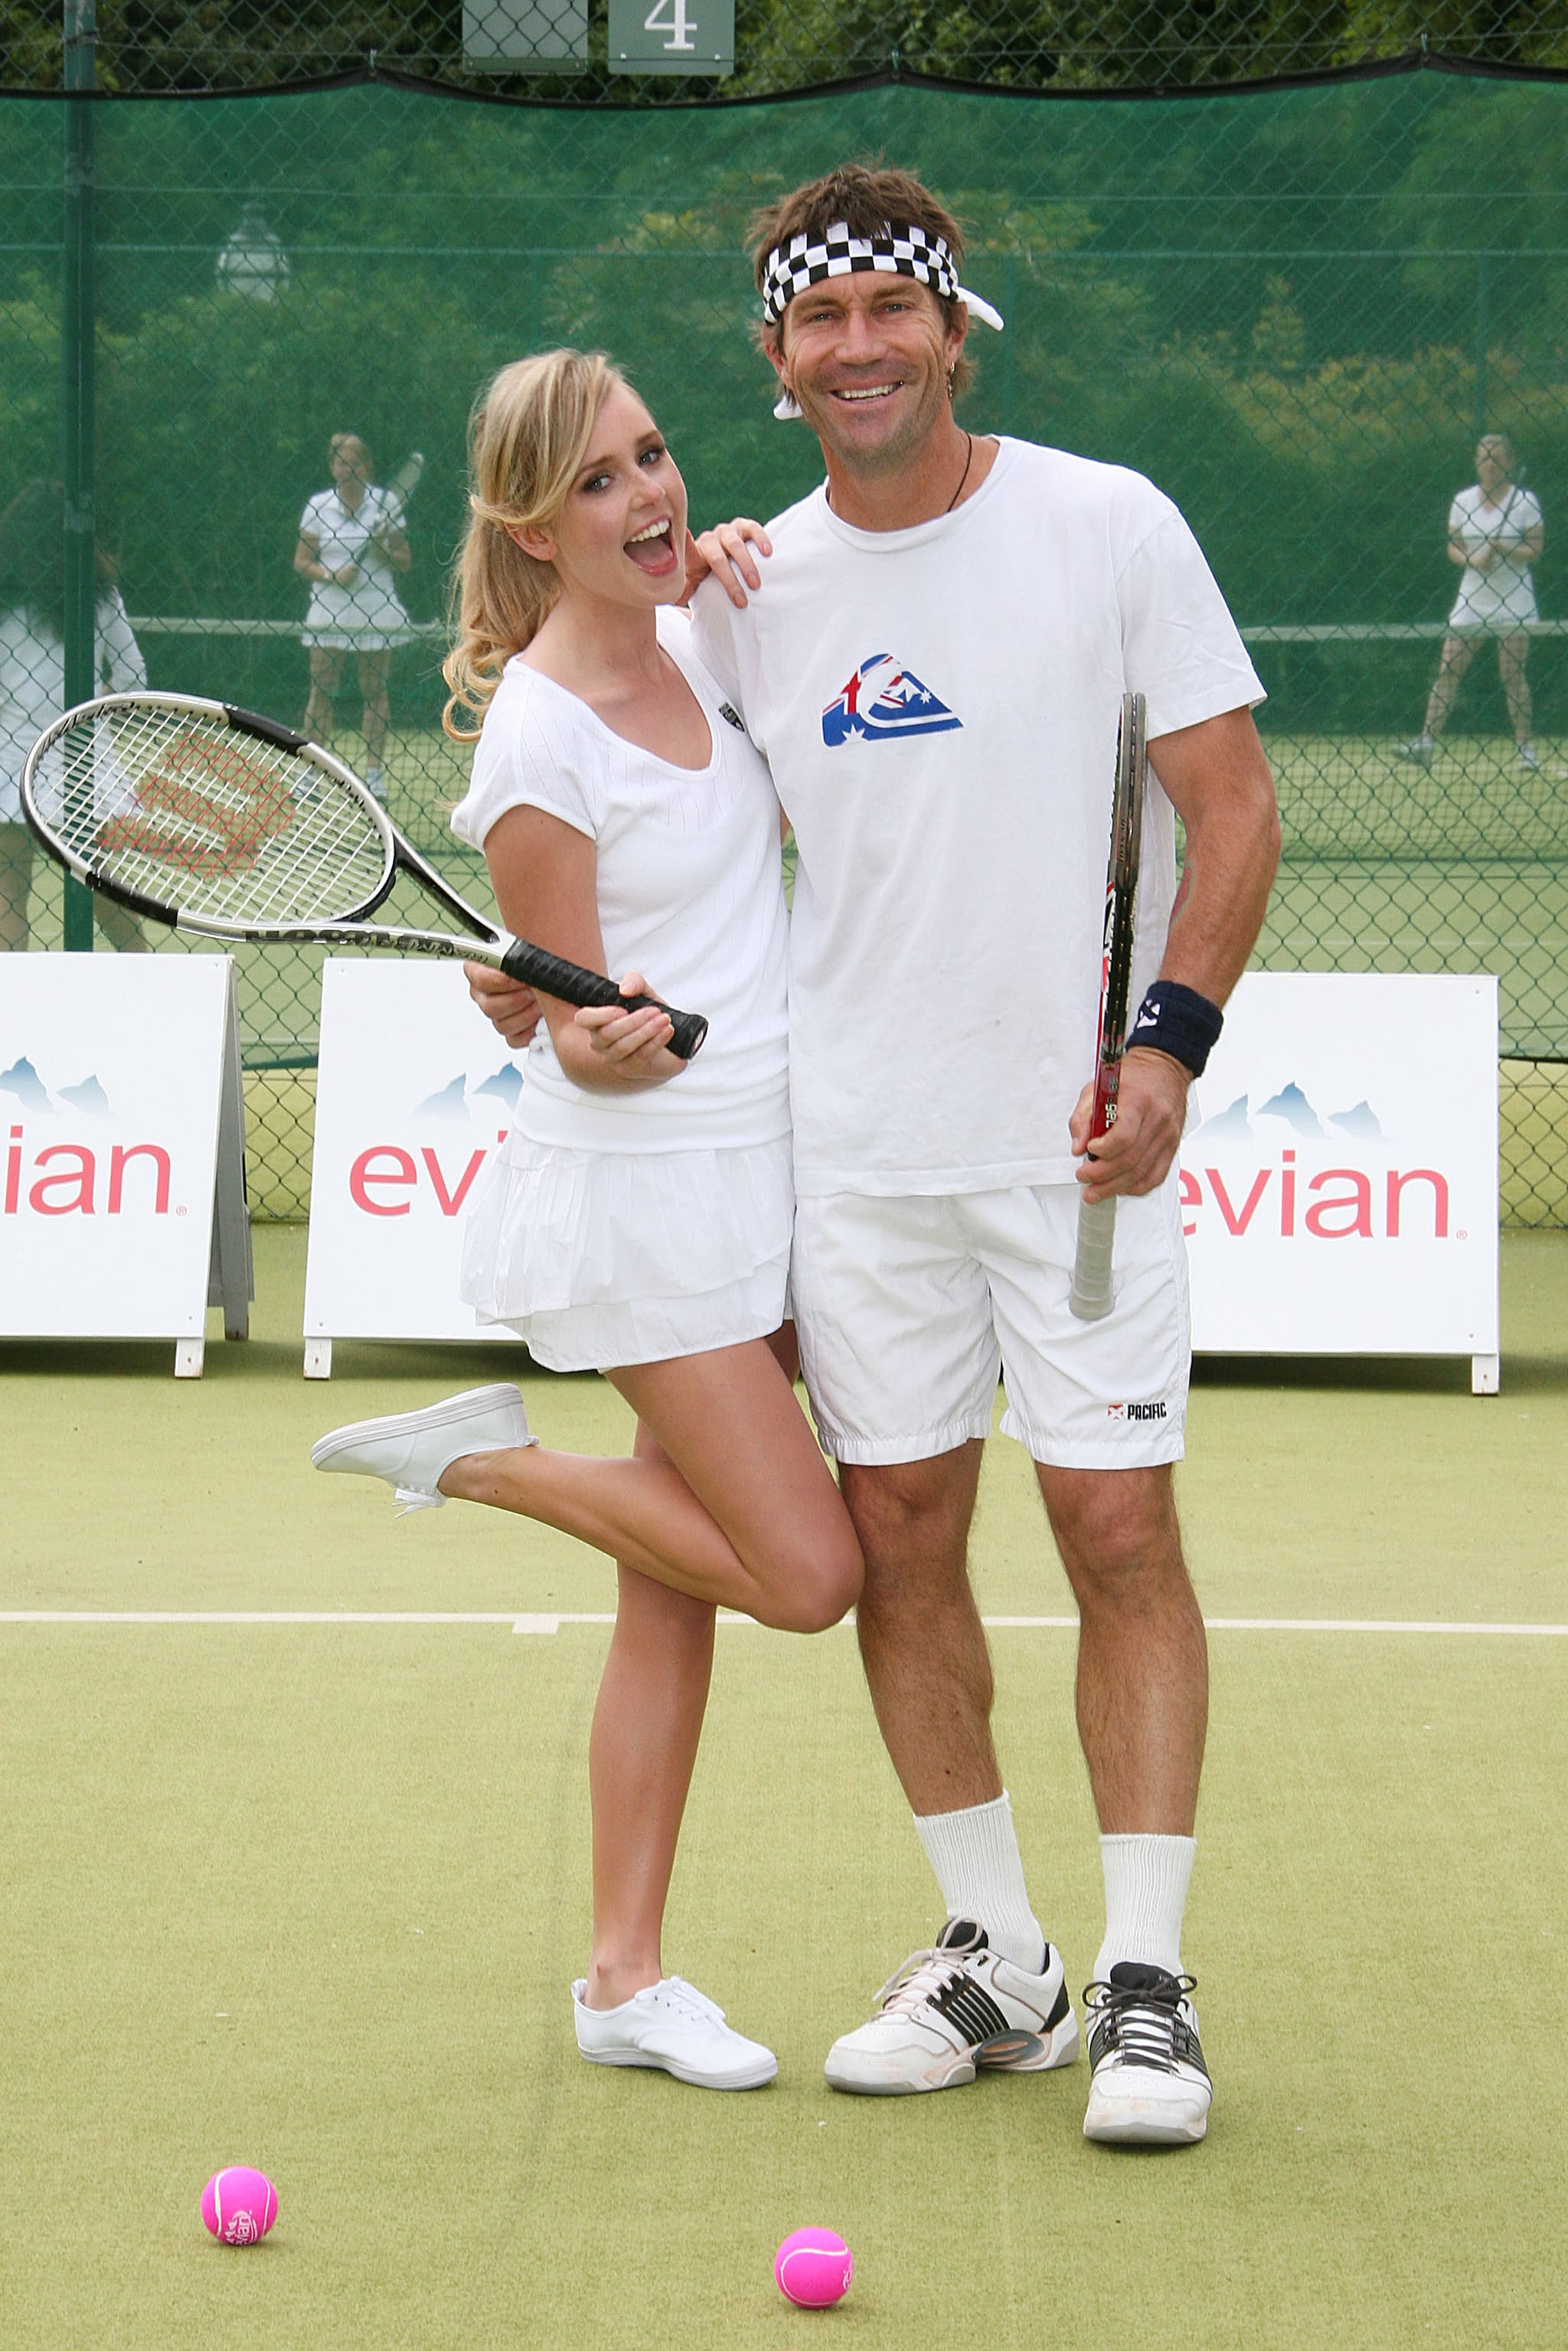 of Diana Vickers Getting a Tennis Lesson at Wimbledon